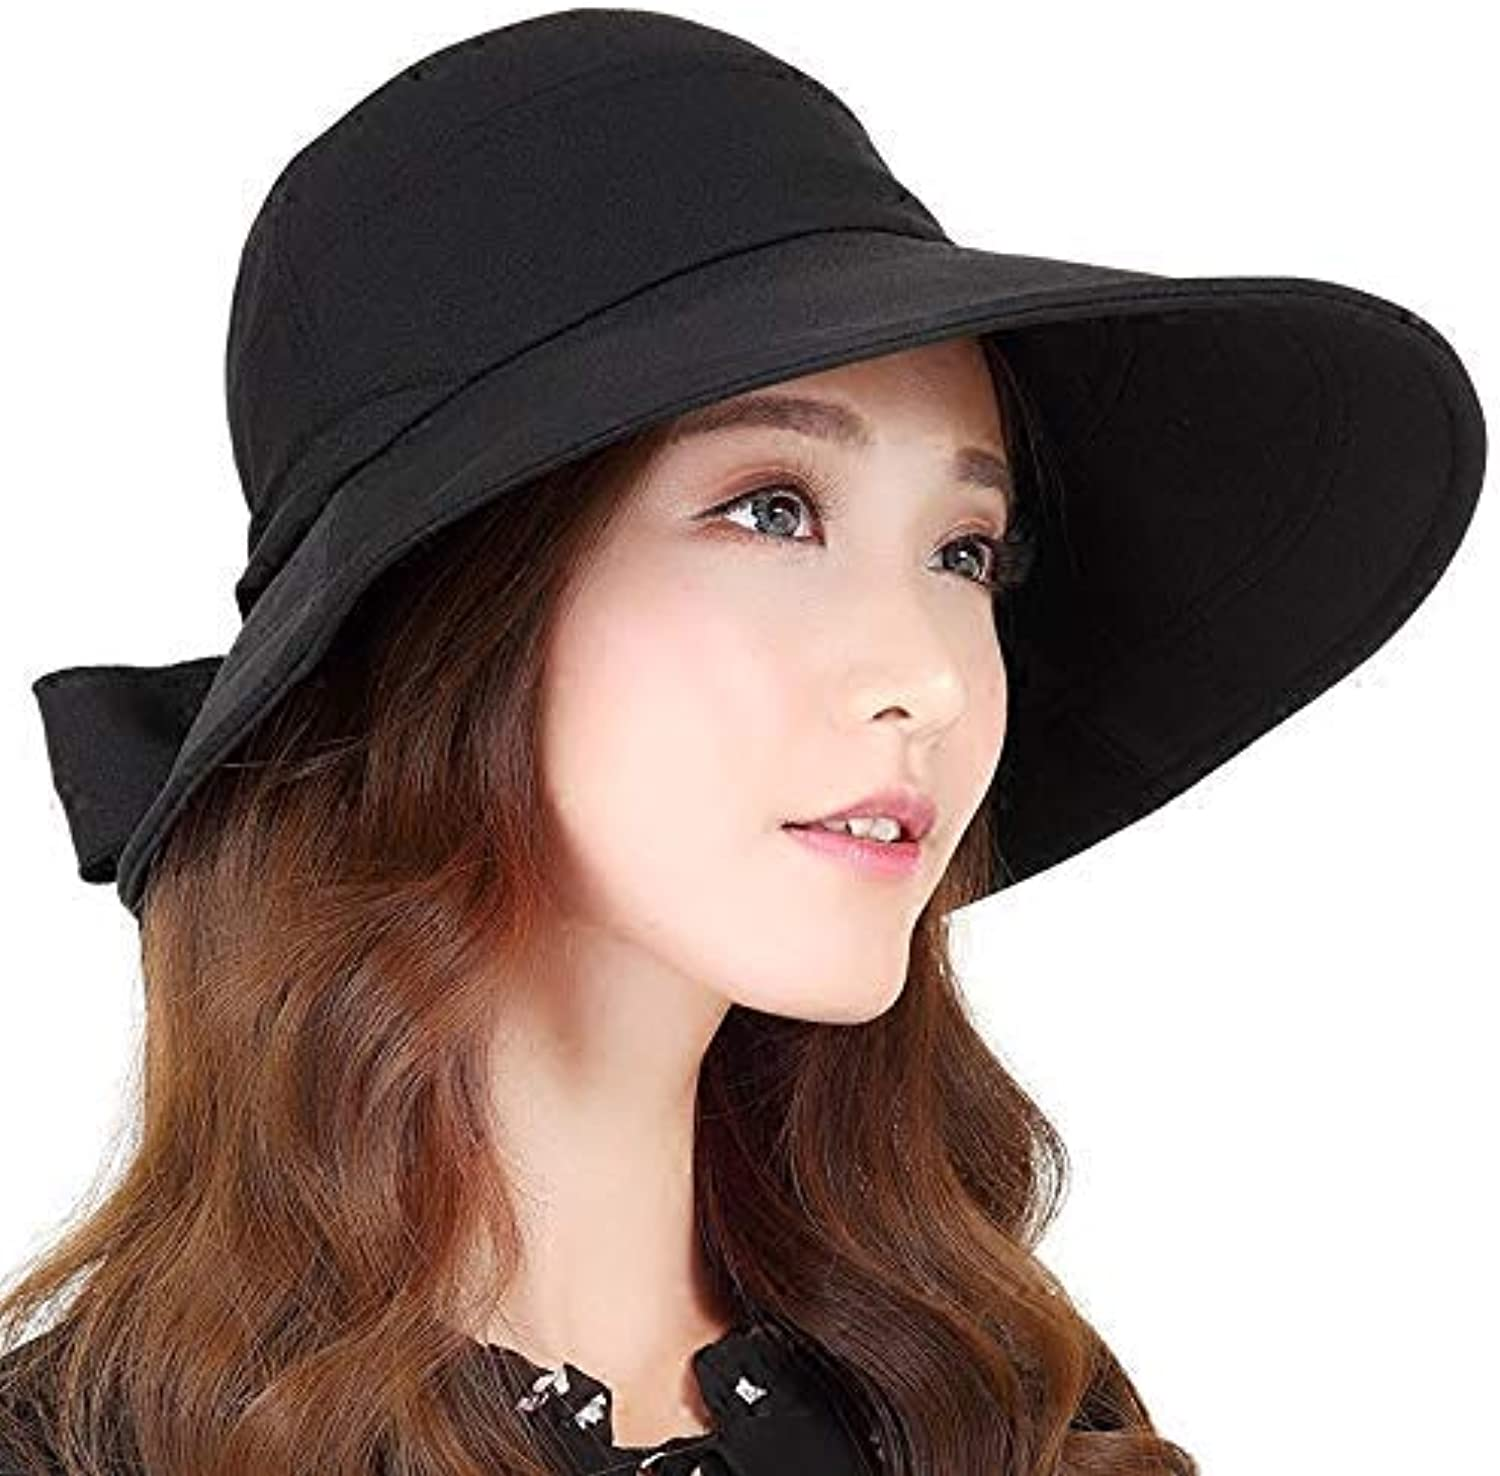 Dingkun Spring and summer outdoor face visor visor summer casual fisherman hat lady sun predection sun hat foldable